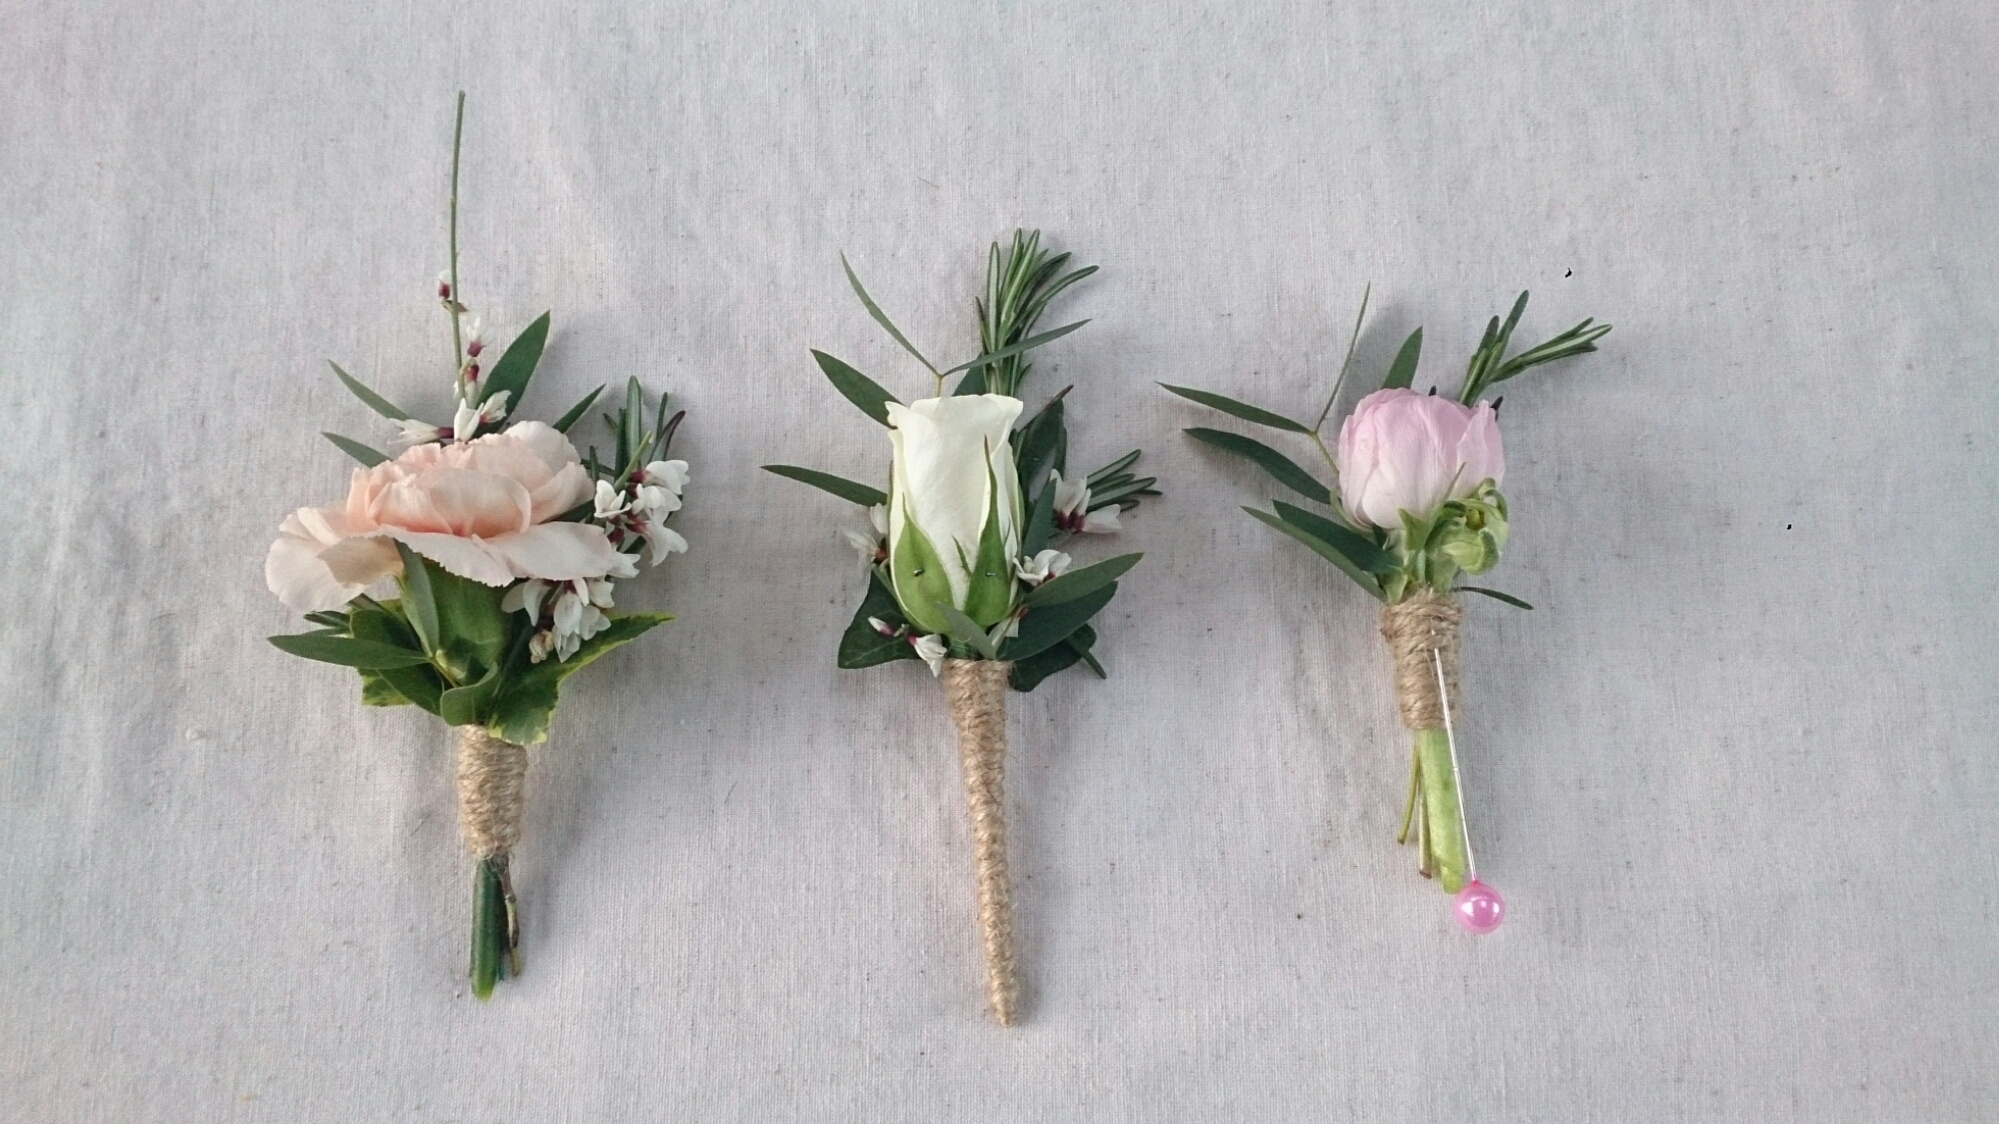 How To Make Wedding Buttonholes: Ditsy Floral Design